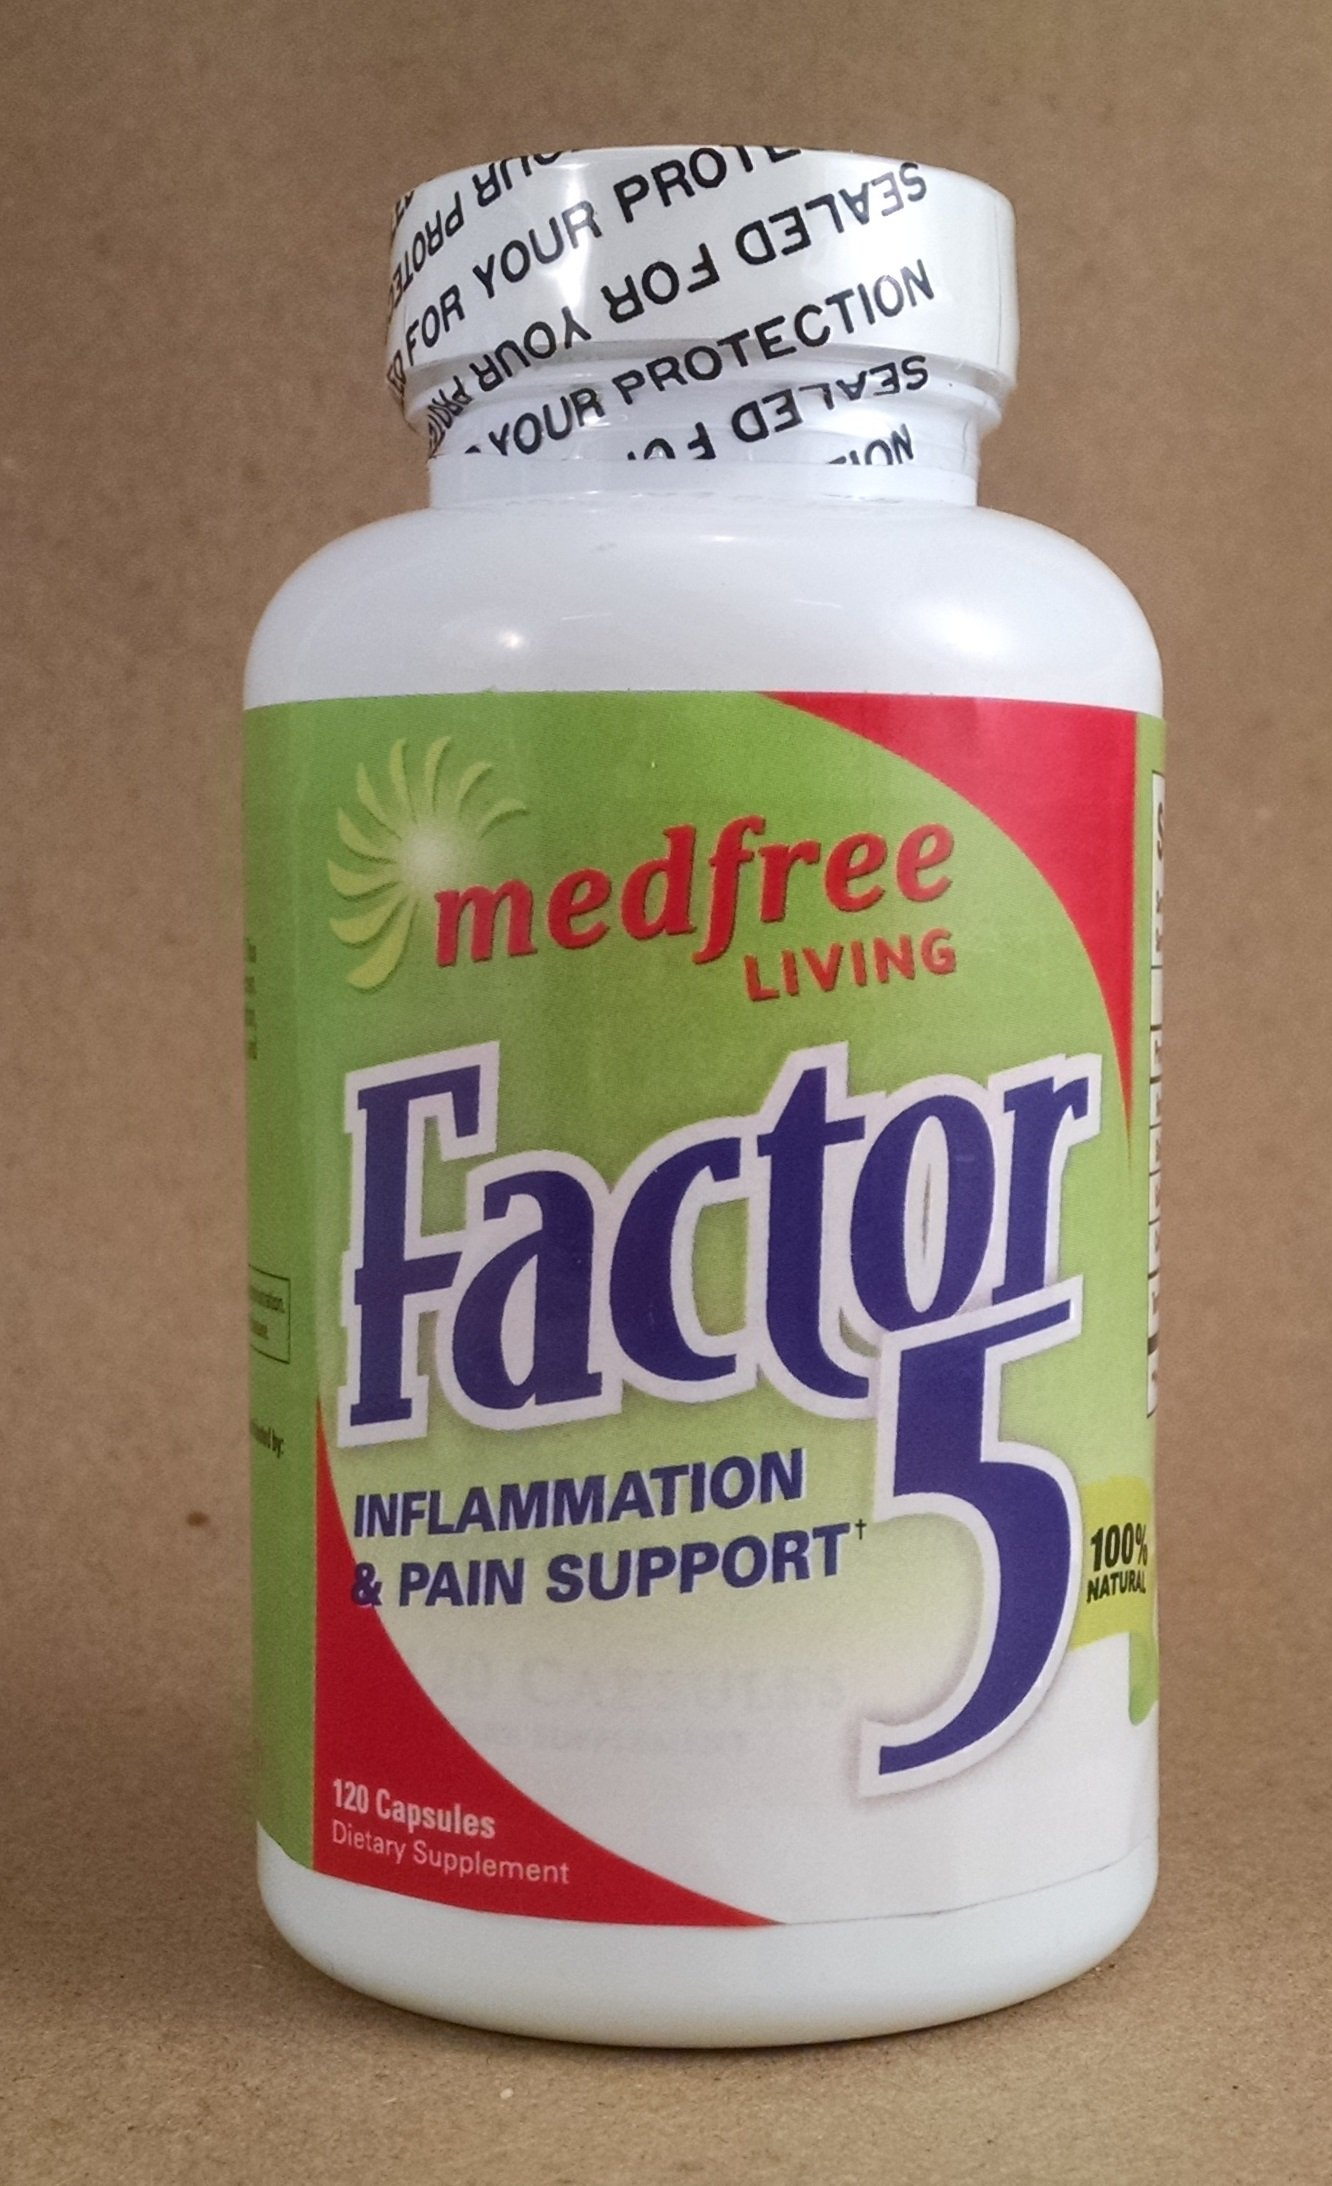 Factor 5 - 120 Capsules - Pain Management & Inflammation Relief Product